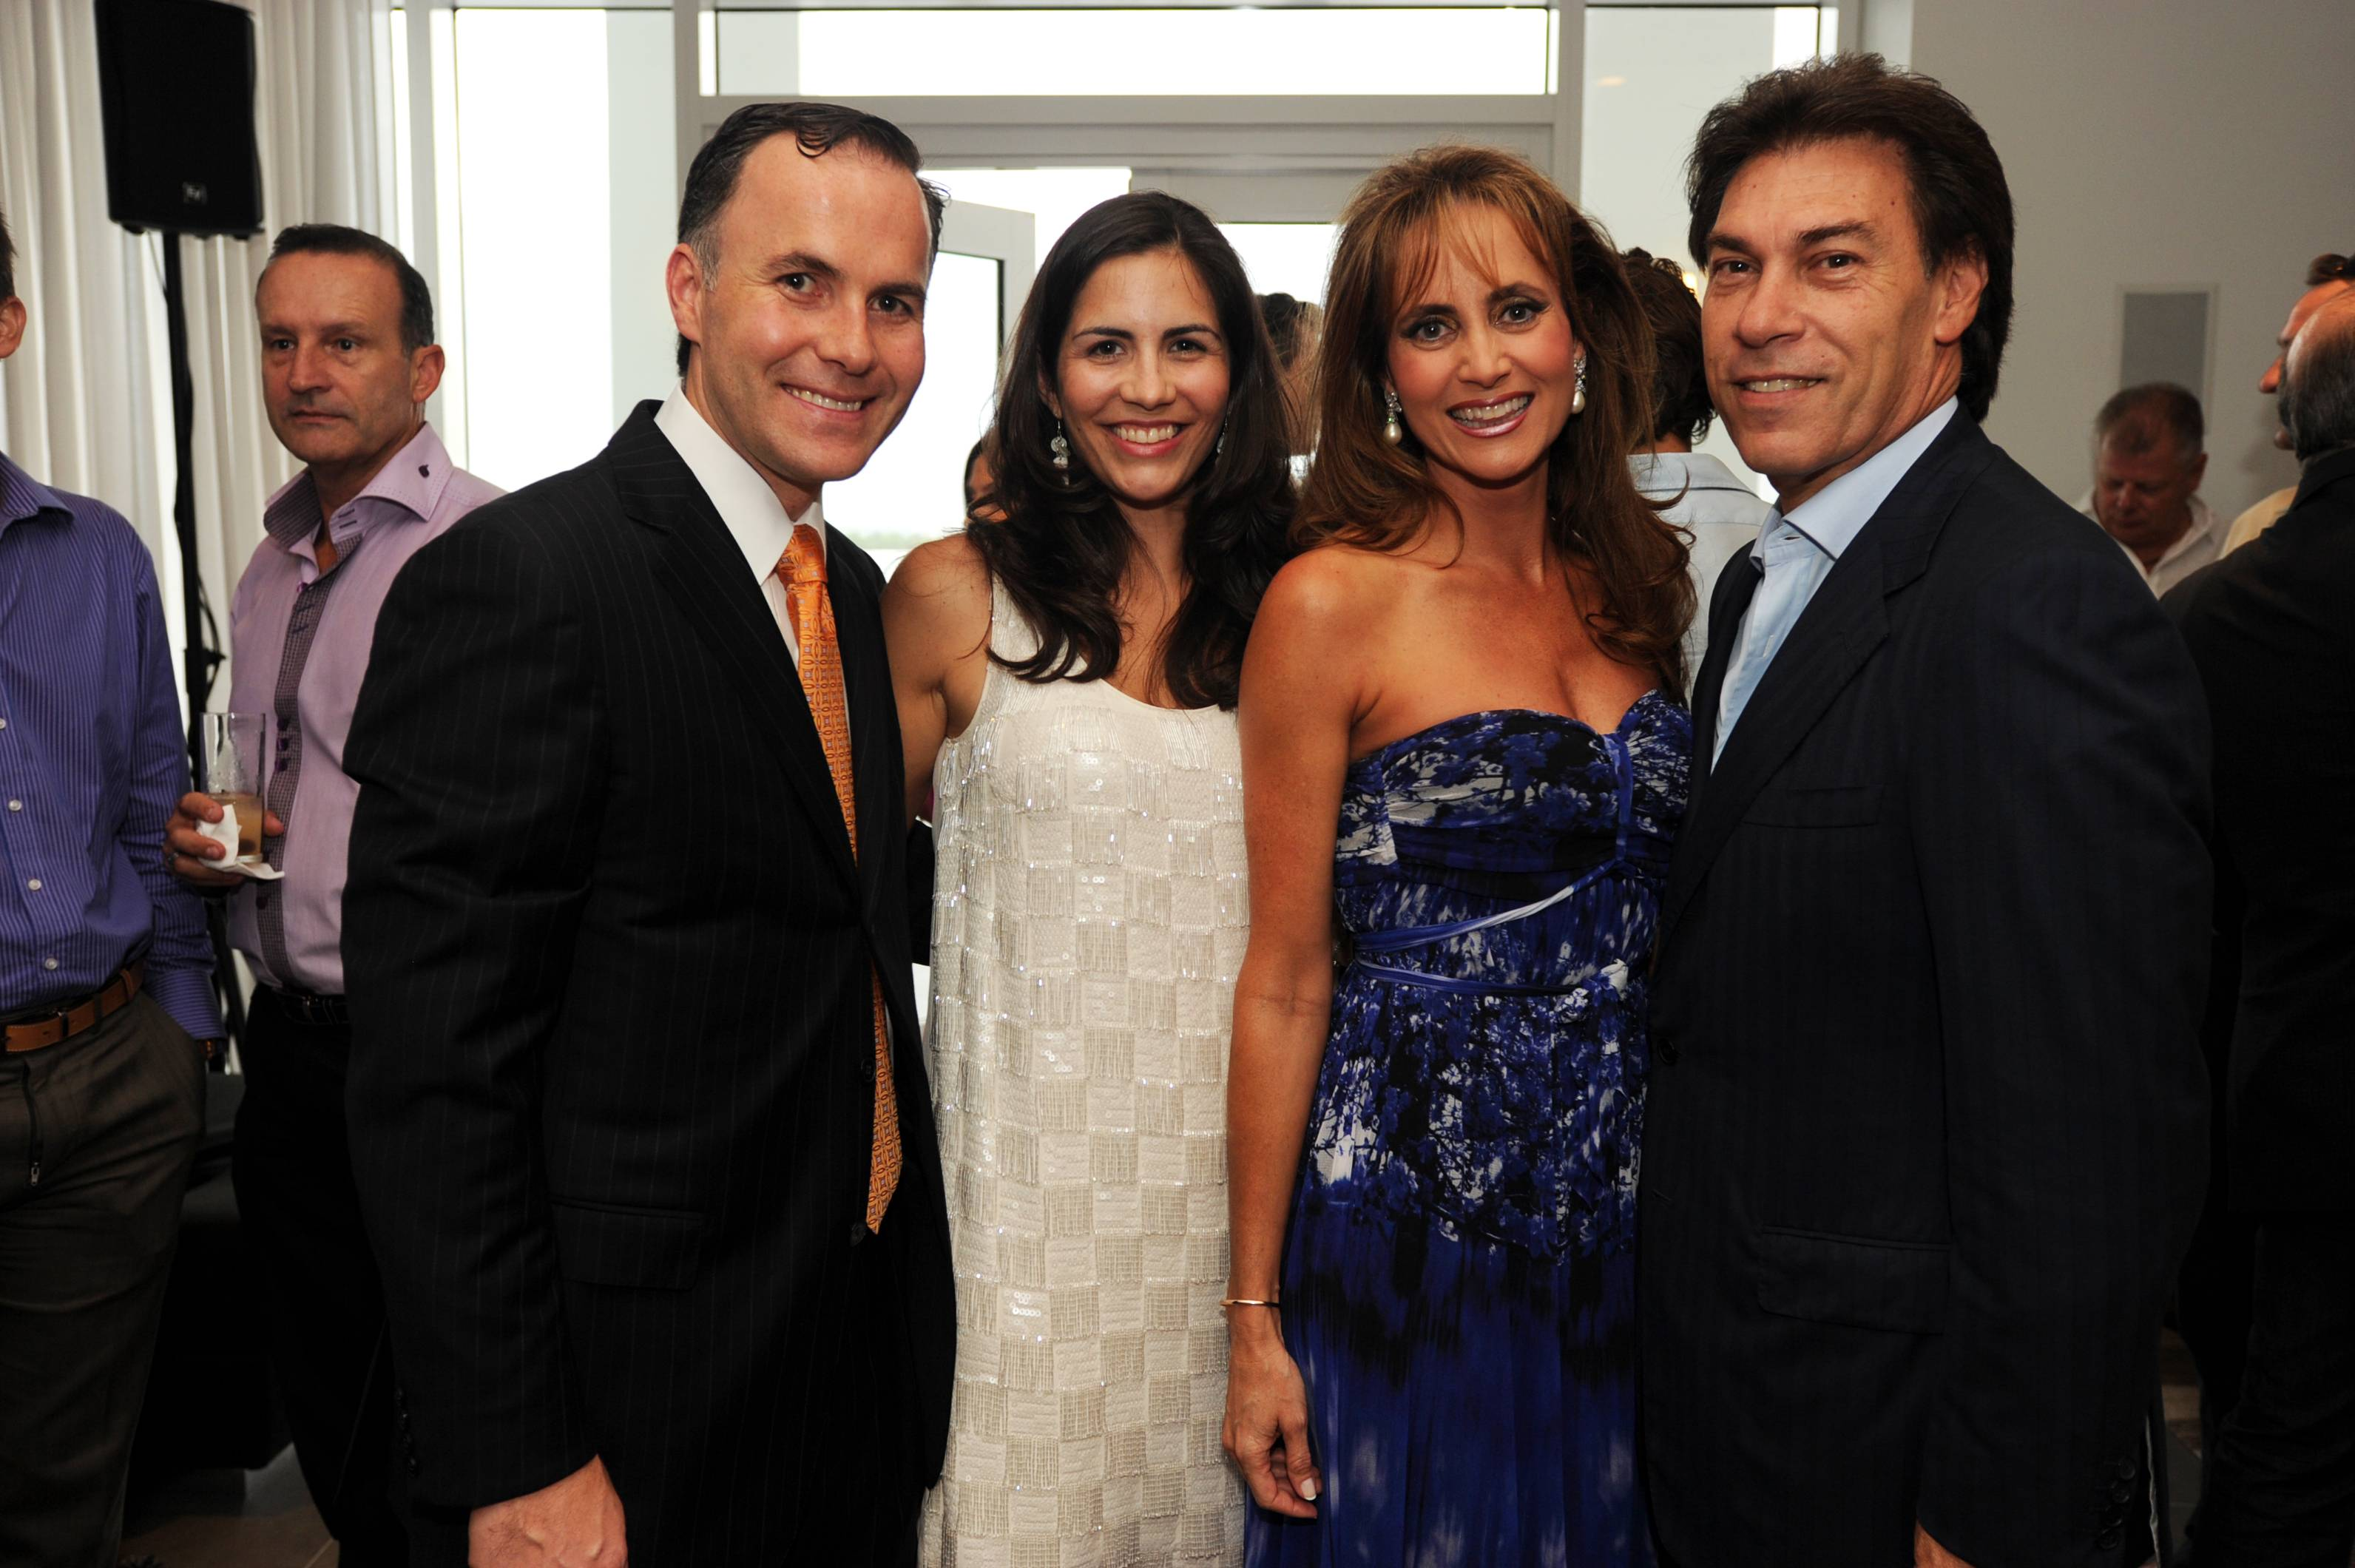 Anthony Burns, Jessica Burns, Ana Cristina Defortuna and Edgardo Defortuna at the Paramount Bay Grand Opening